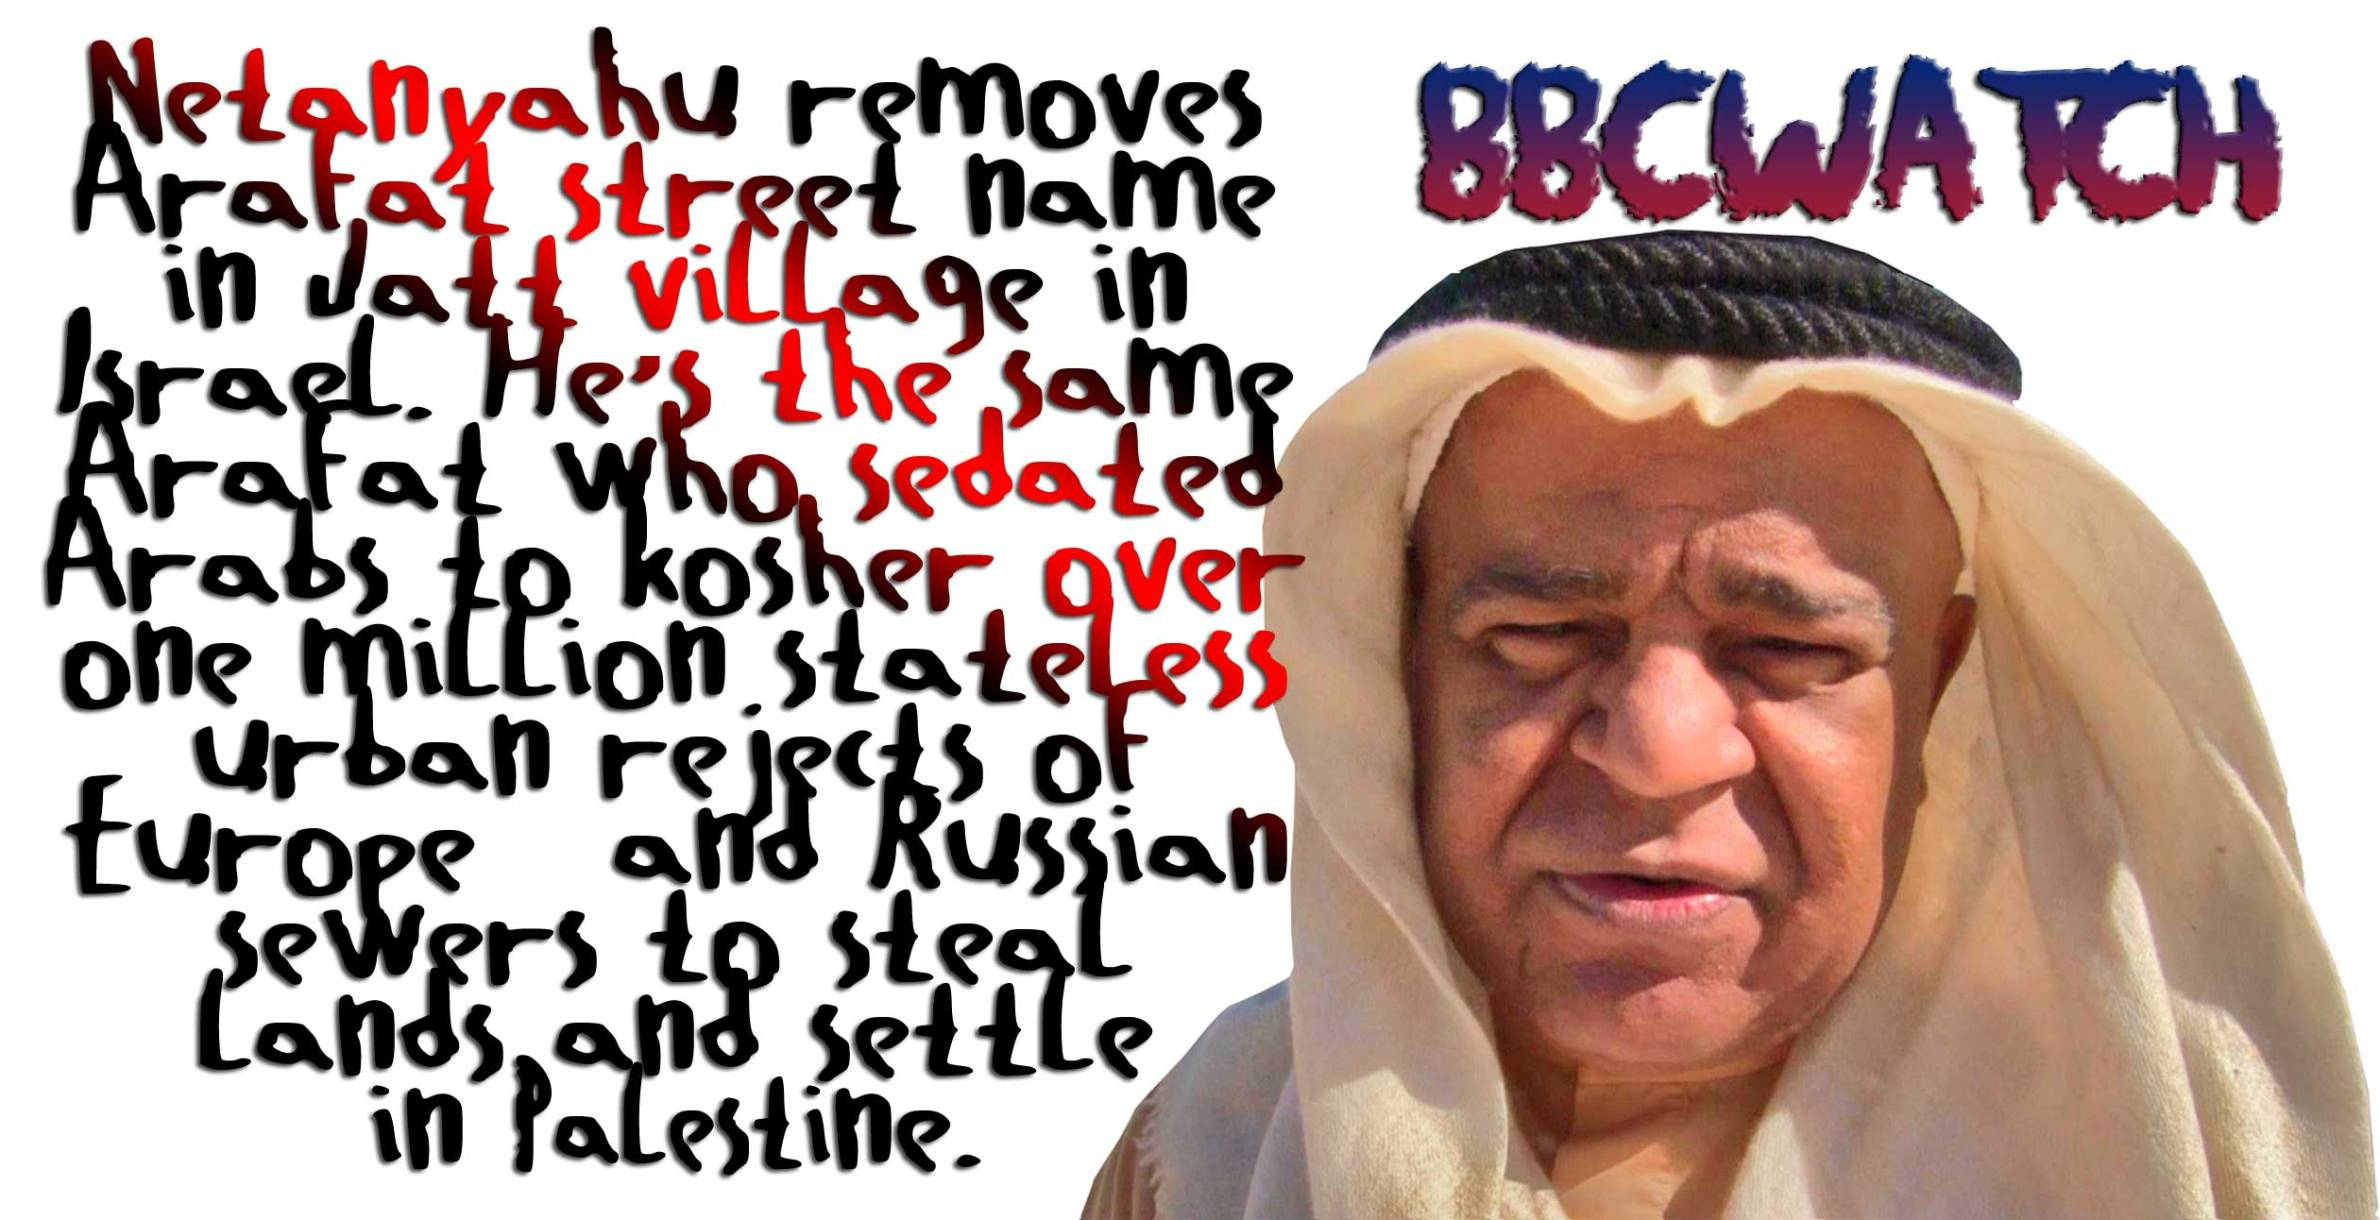 💥BBCwatch; A Self-Appointed HateMonger MediaWhore Anal Floss: WTF! Netanyahu removes Arafat street name in Jatt village in Israel. He's the same Arafat who sedated Arabs to kosher over one million stateless urban rejects of Europe and Russian sewers to steal lands and settle in Palestine. 💥